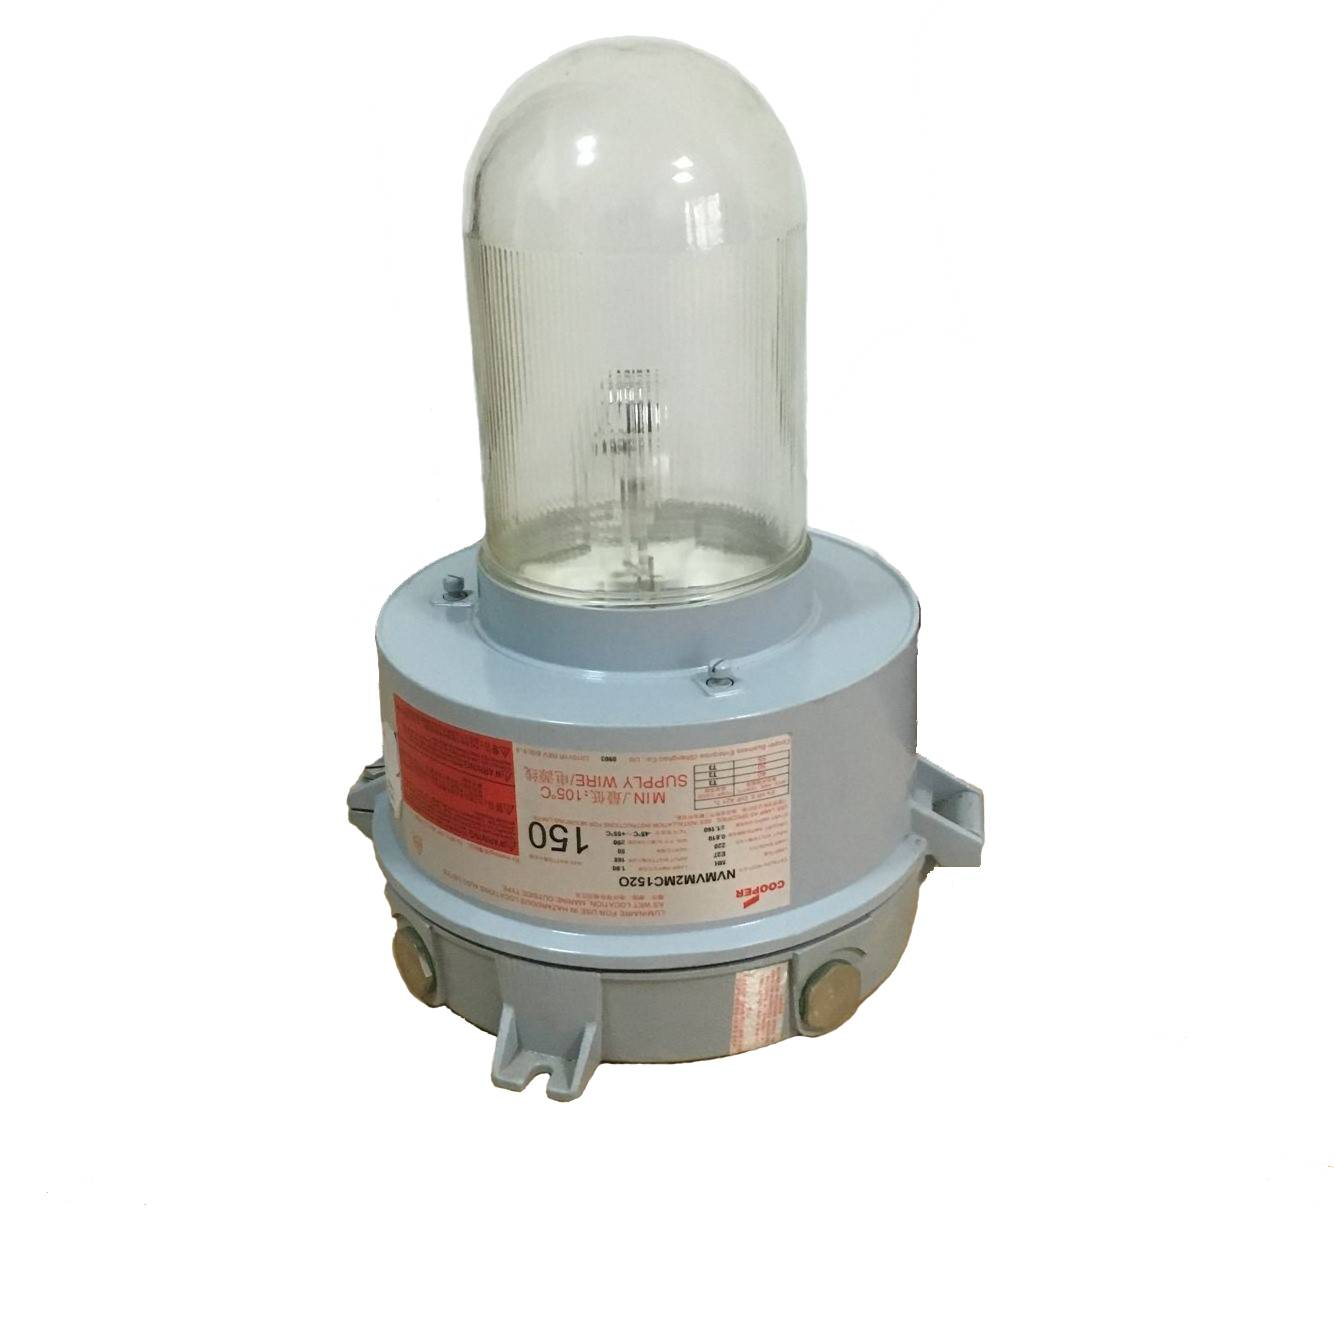 Explosion proof spot light- Used for 2nd zone metal lighting products